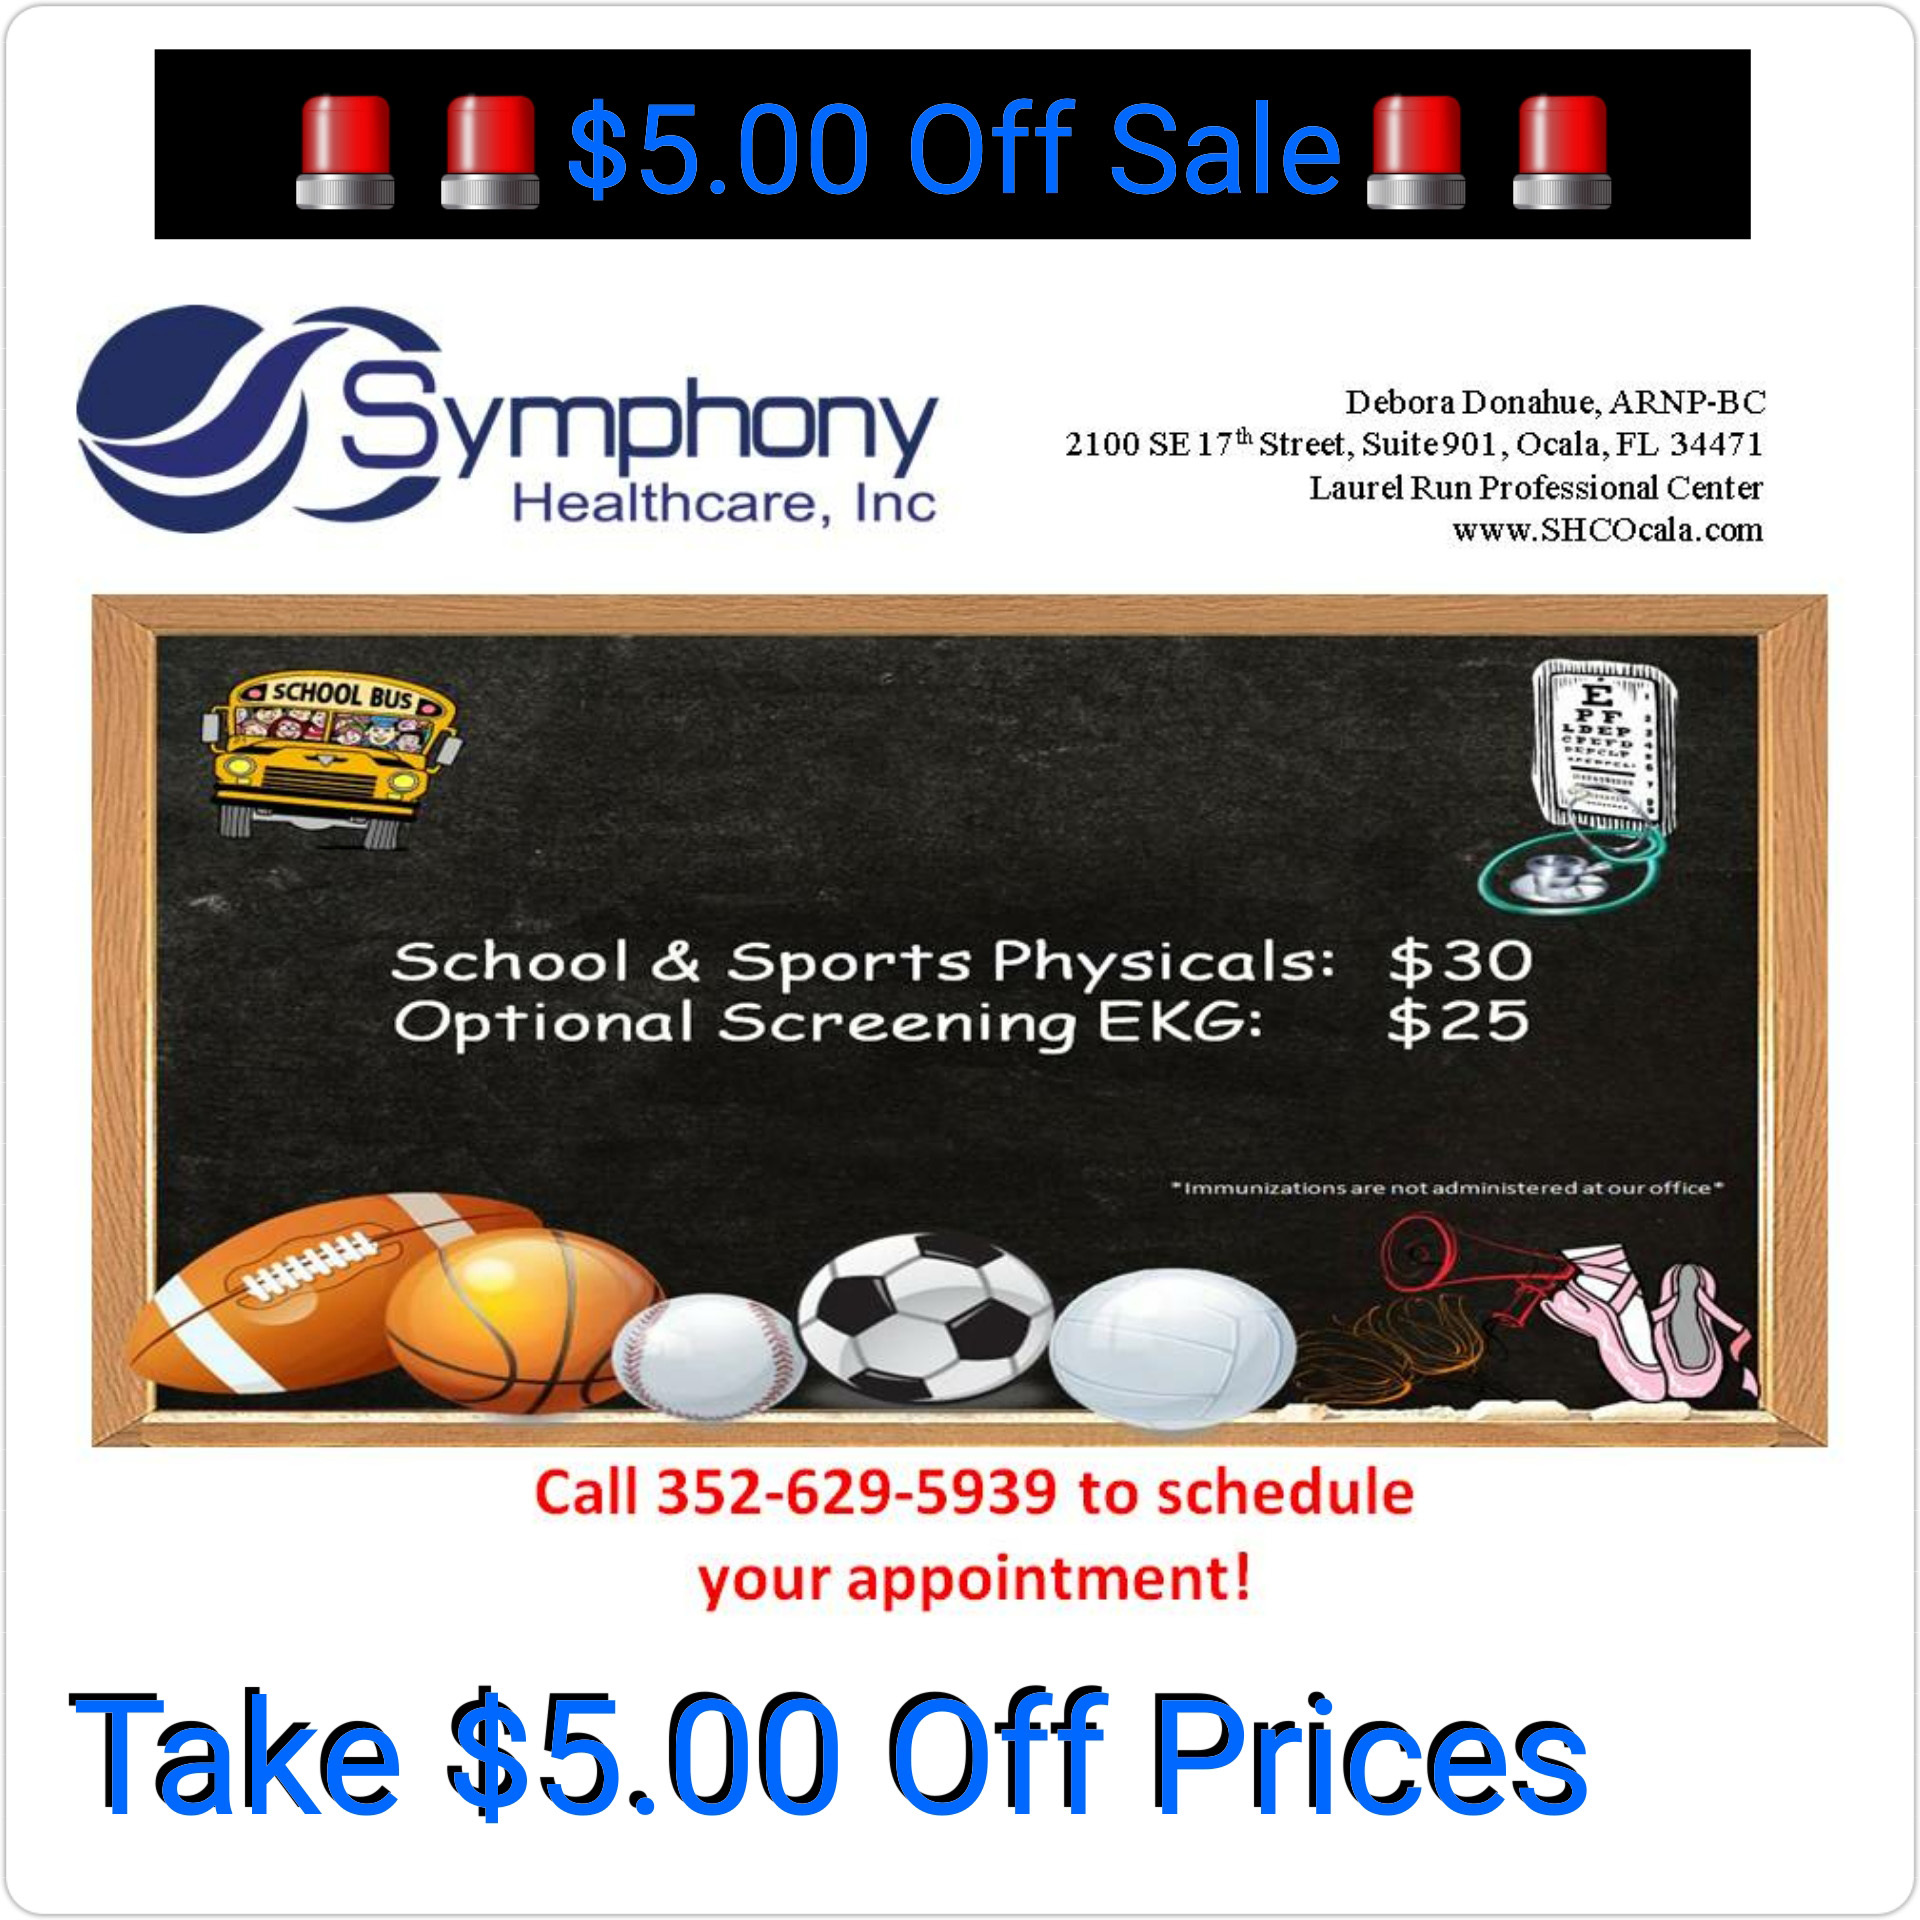 back to school, ocala news, coupon for physicals, symphony healthcare, ocala post